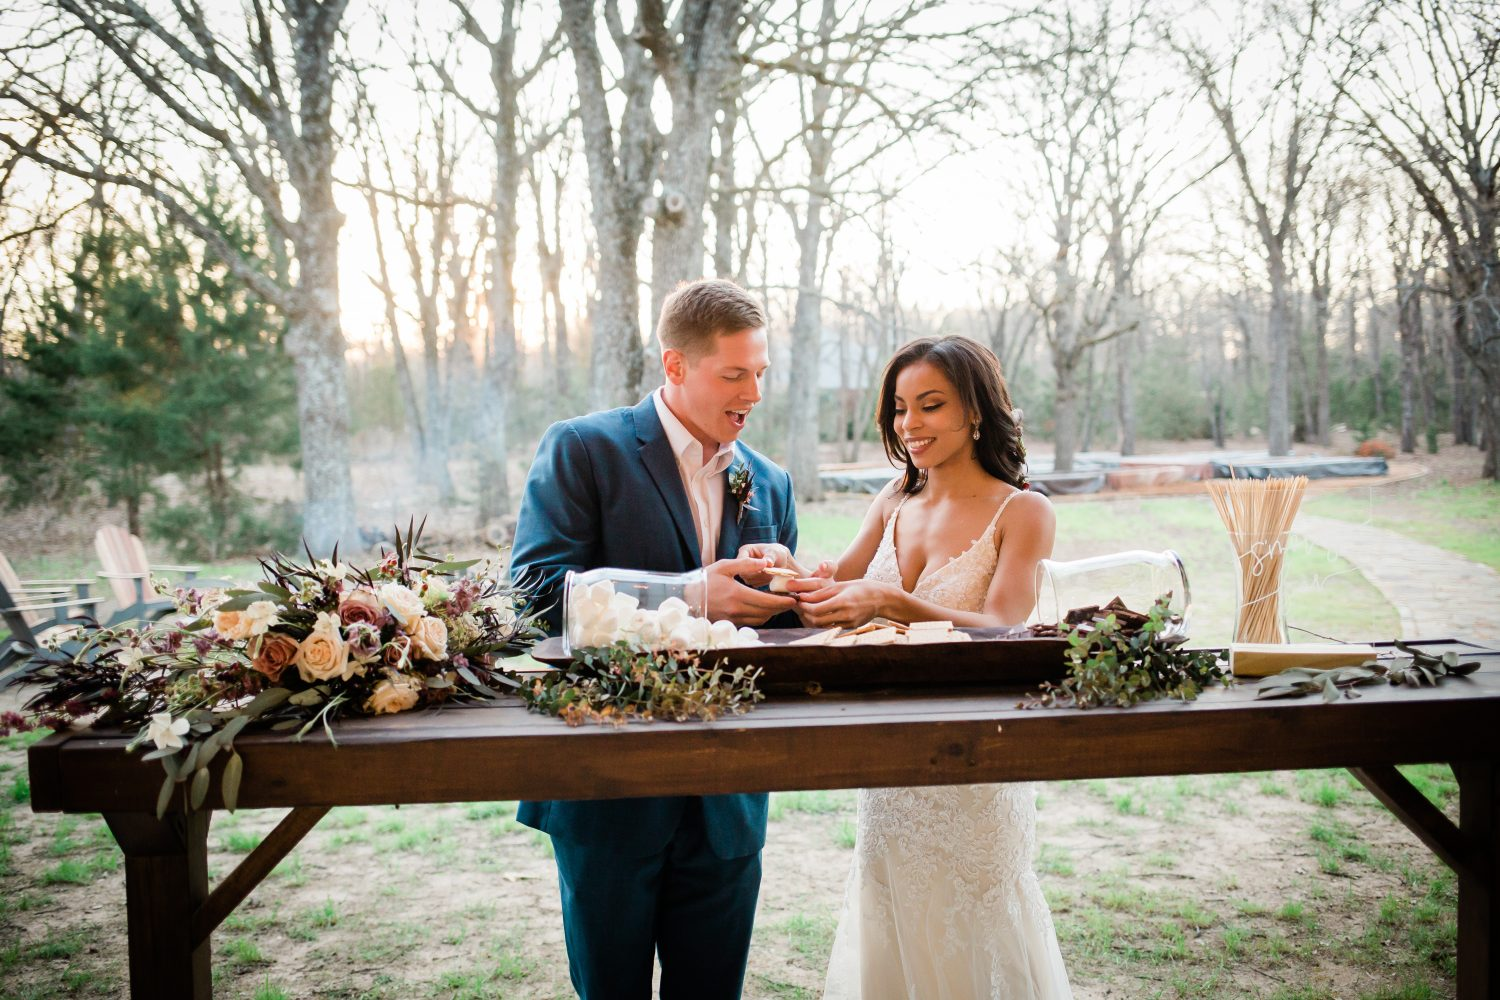 Wild Rose Events Dallas Wedding Florist at Dallas Wedding Venue Under the Wildwood by Drawing with Light Photography, boho wedding smore bar